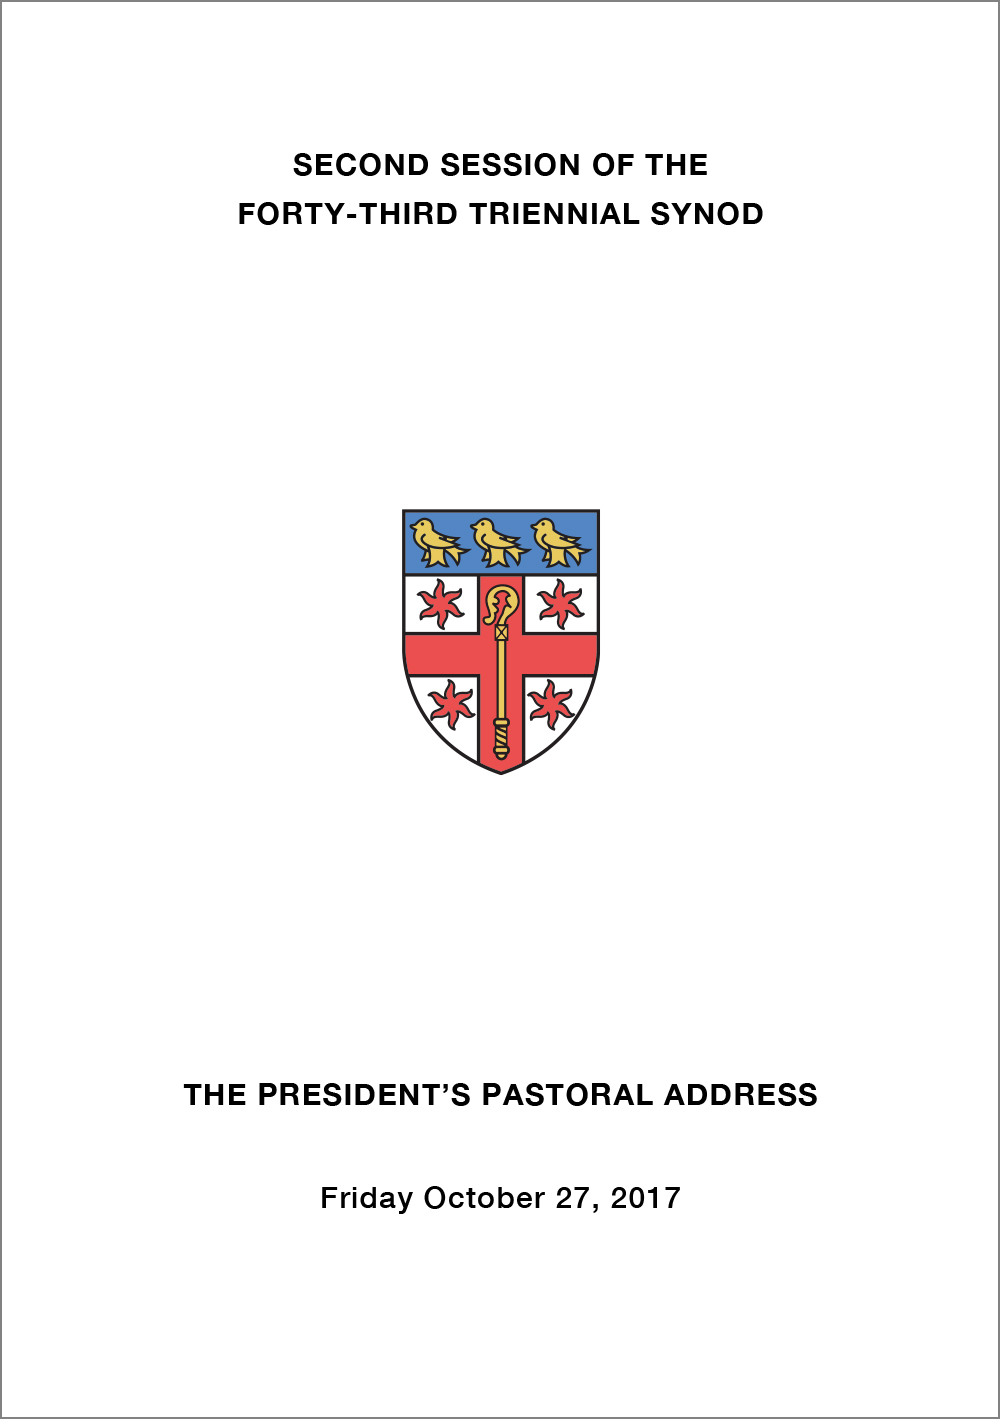 Download  the 2017 Archbishop's Pastoral Address [PDF 169KB]